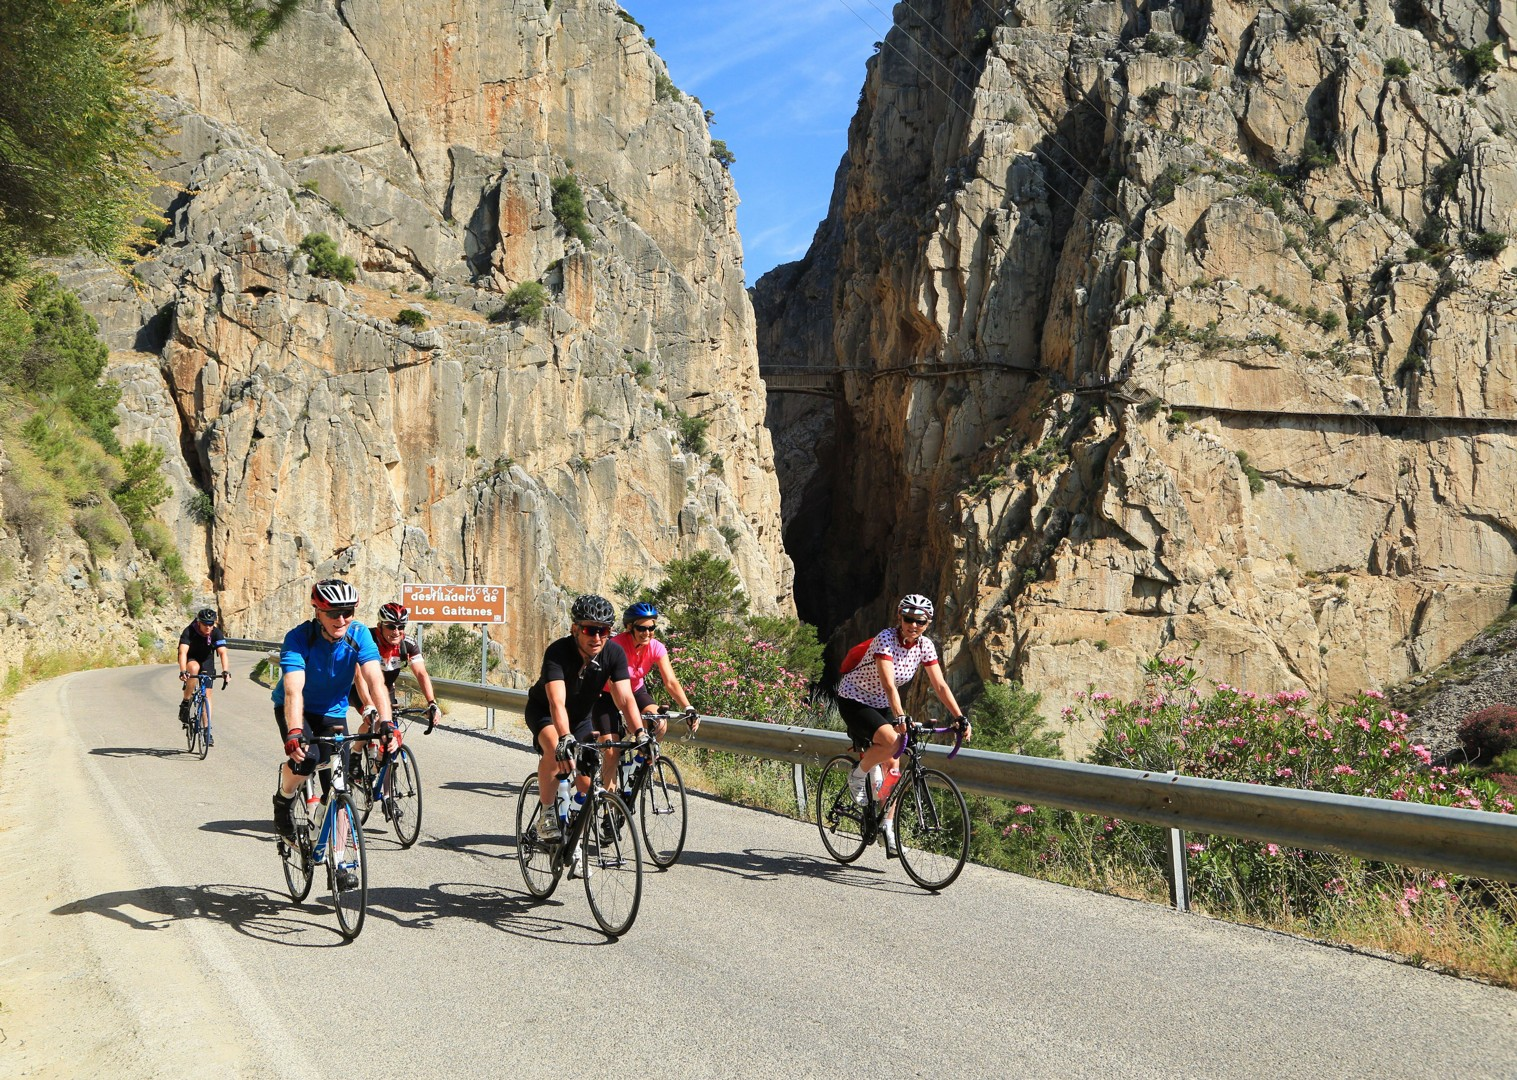 road-cycling-adventure-through-basque-country.jpg - NEW! Spain - Basque Country to Andalucia - 21 Day - Road Cycling